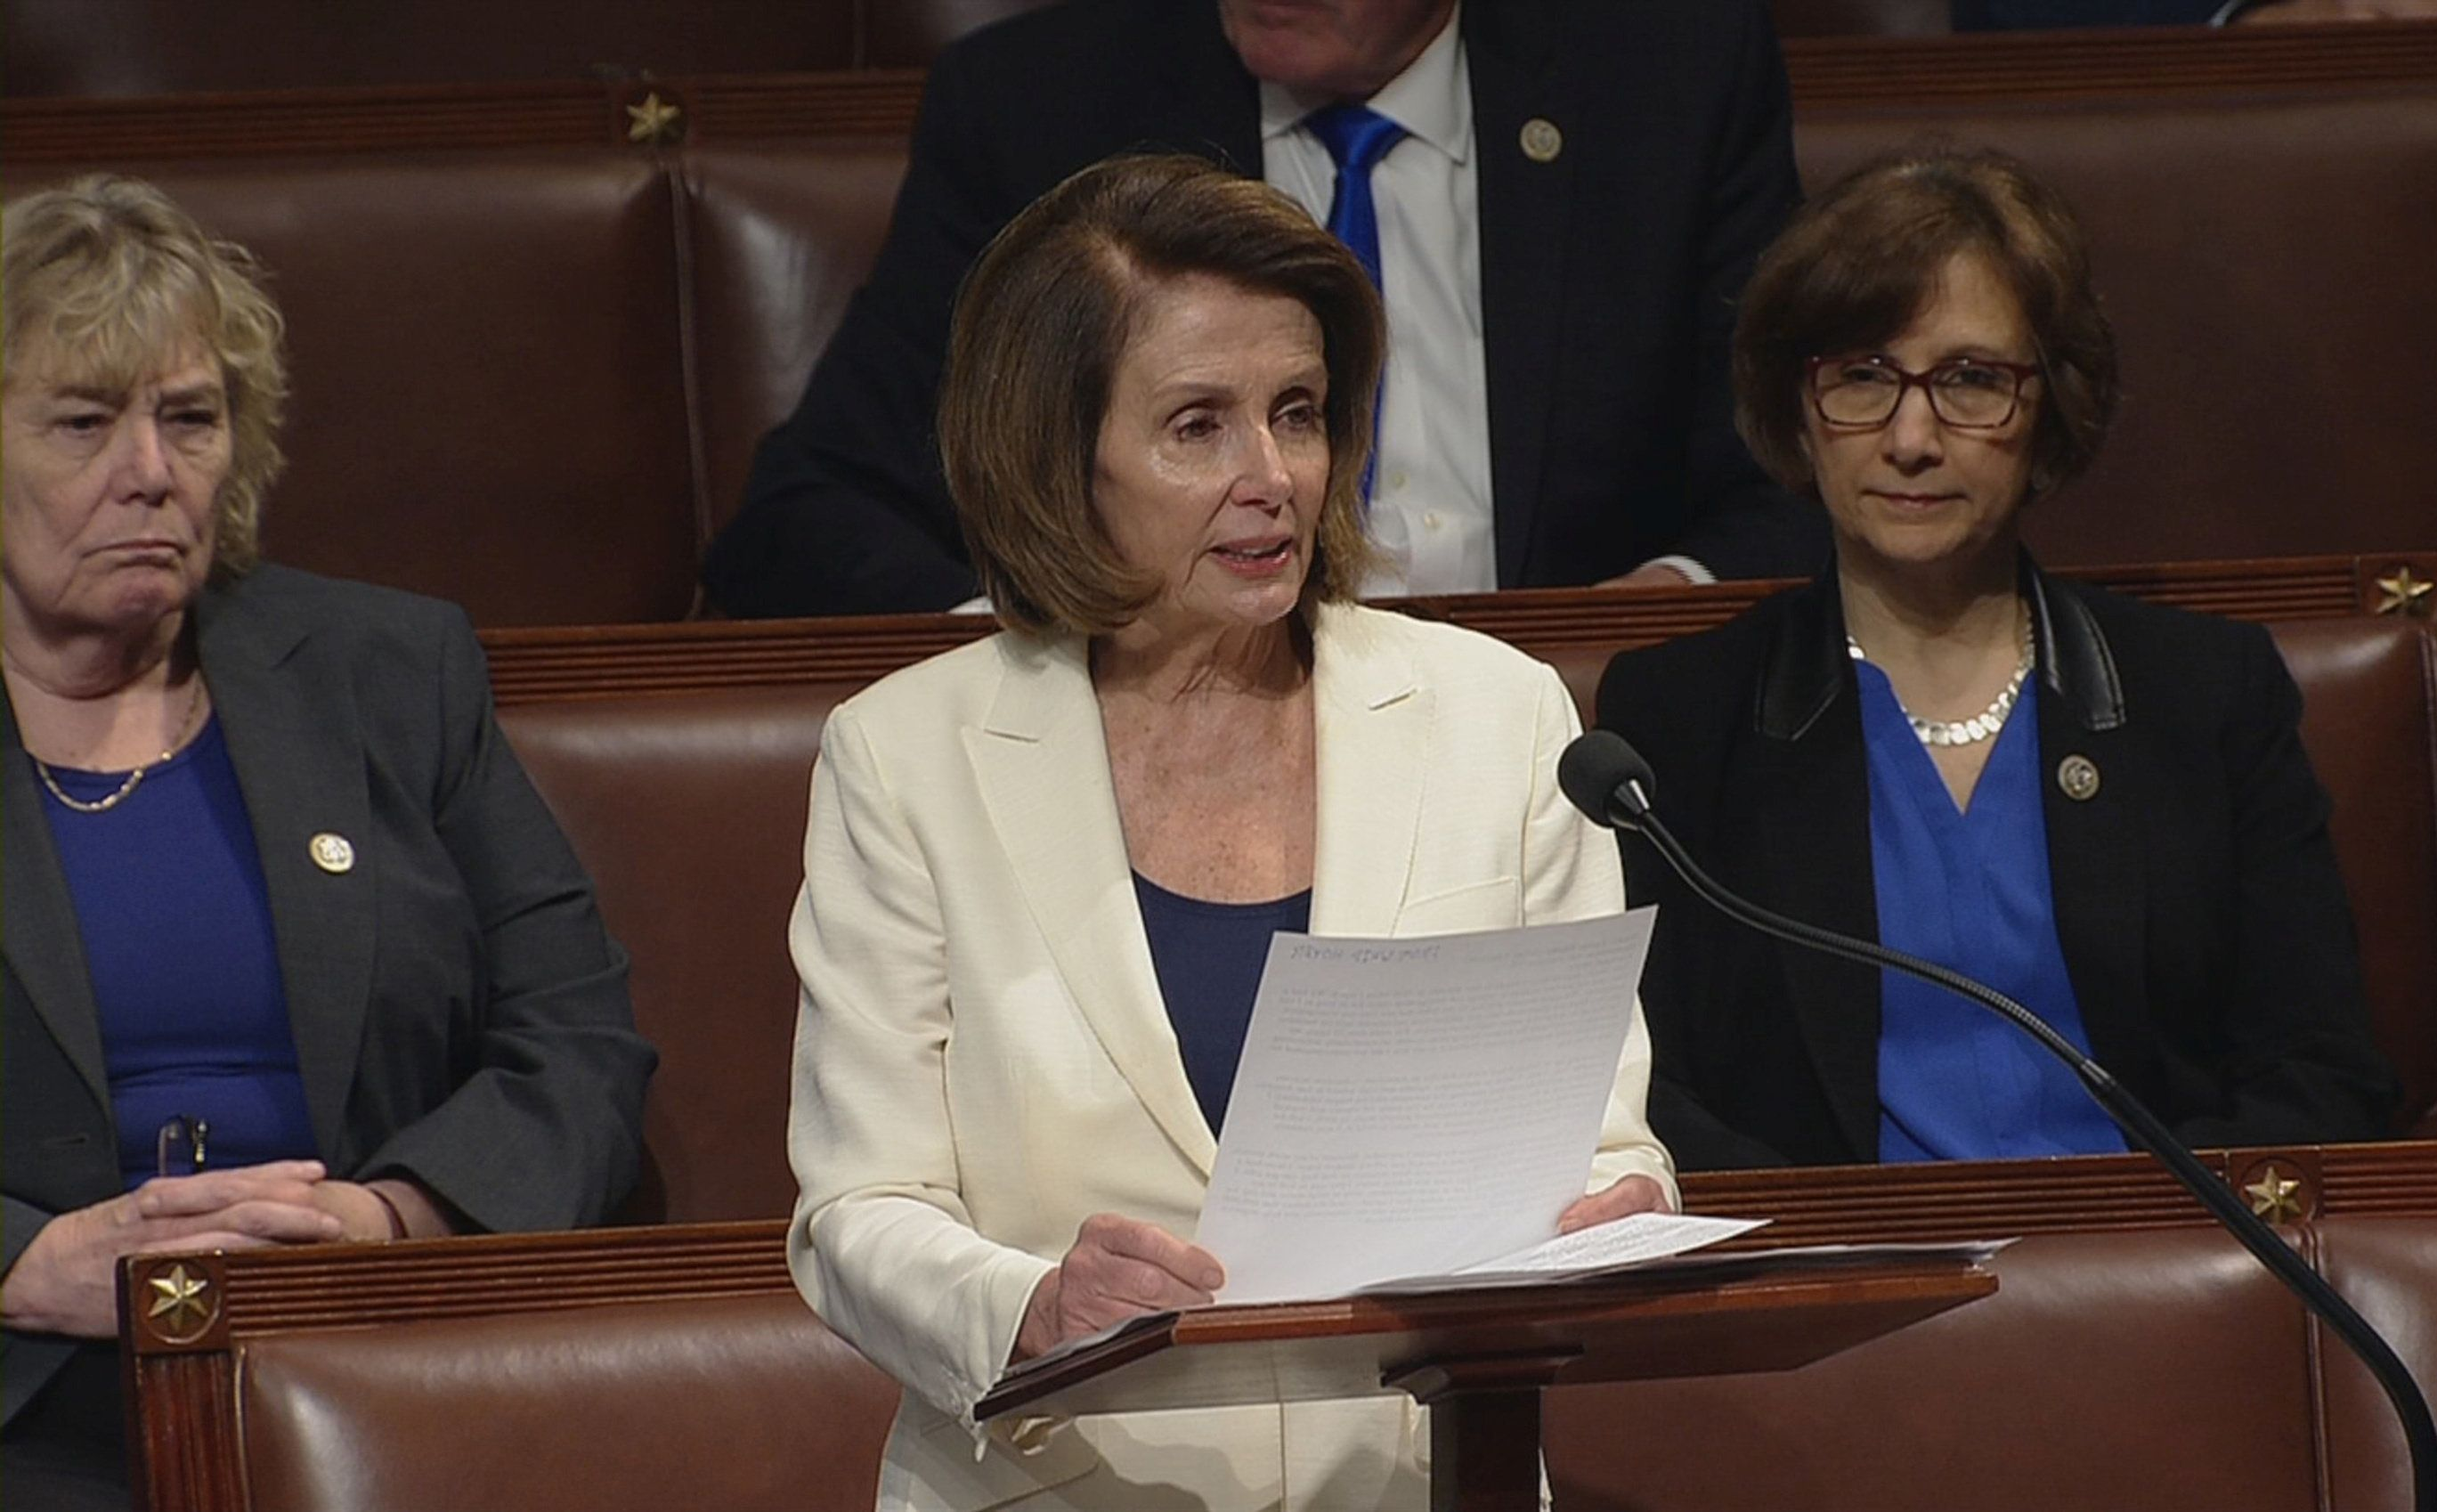 Pelosi spoke for over seven hours on the House floor on Wednesday.